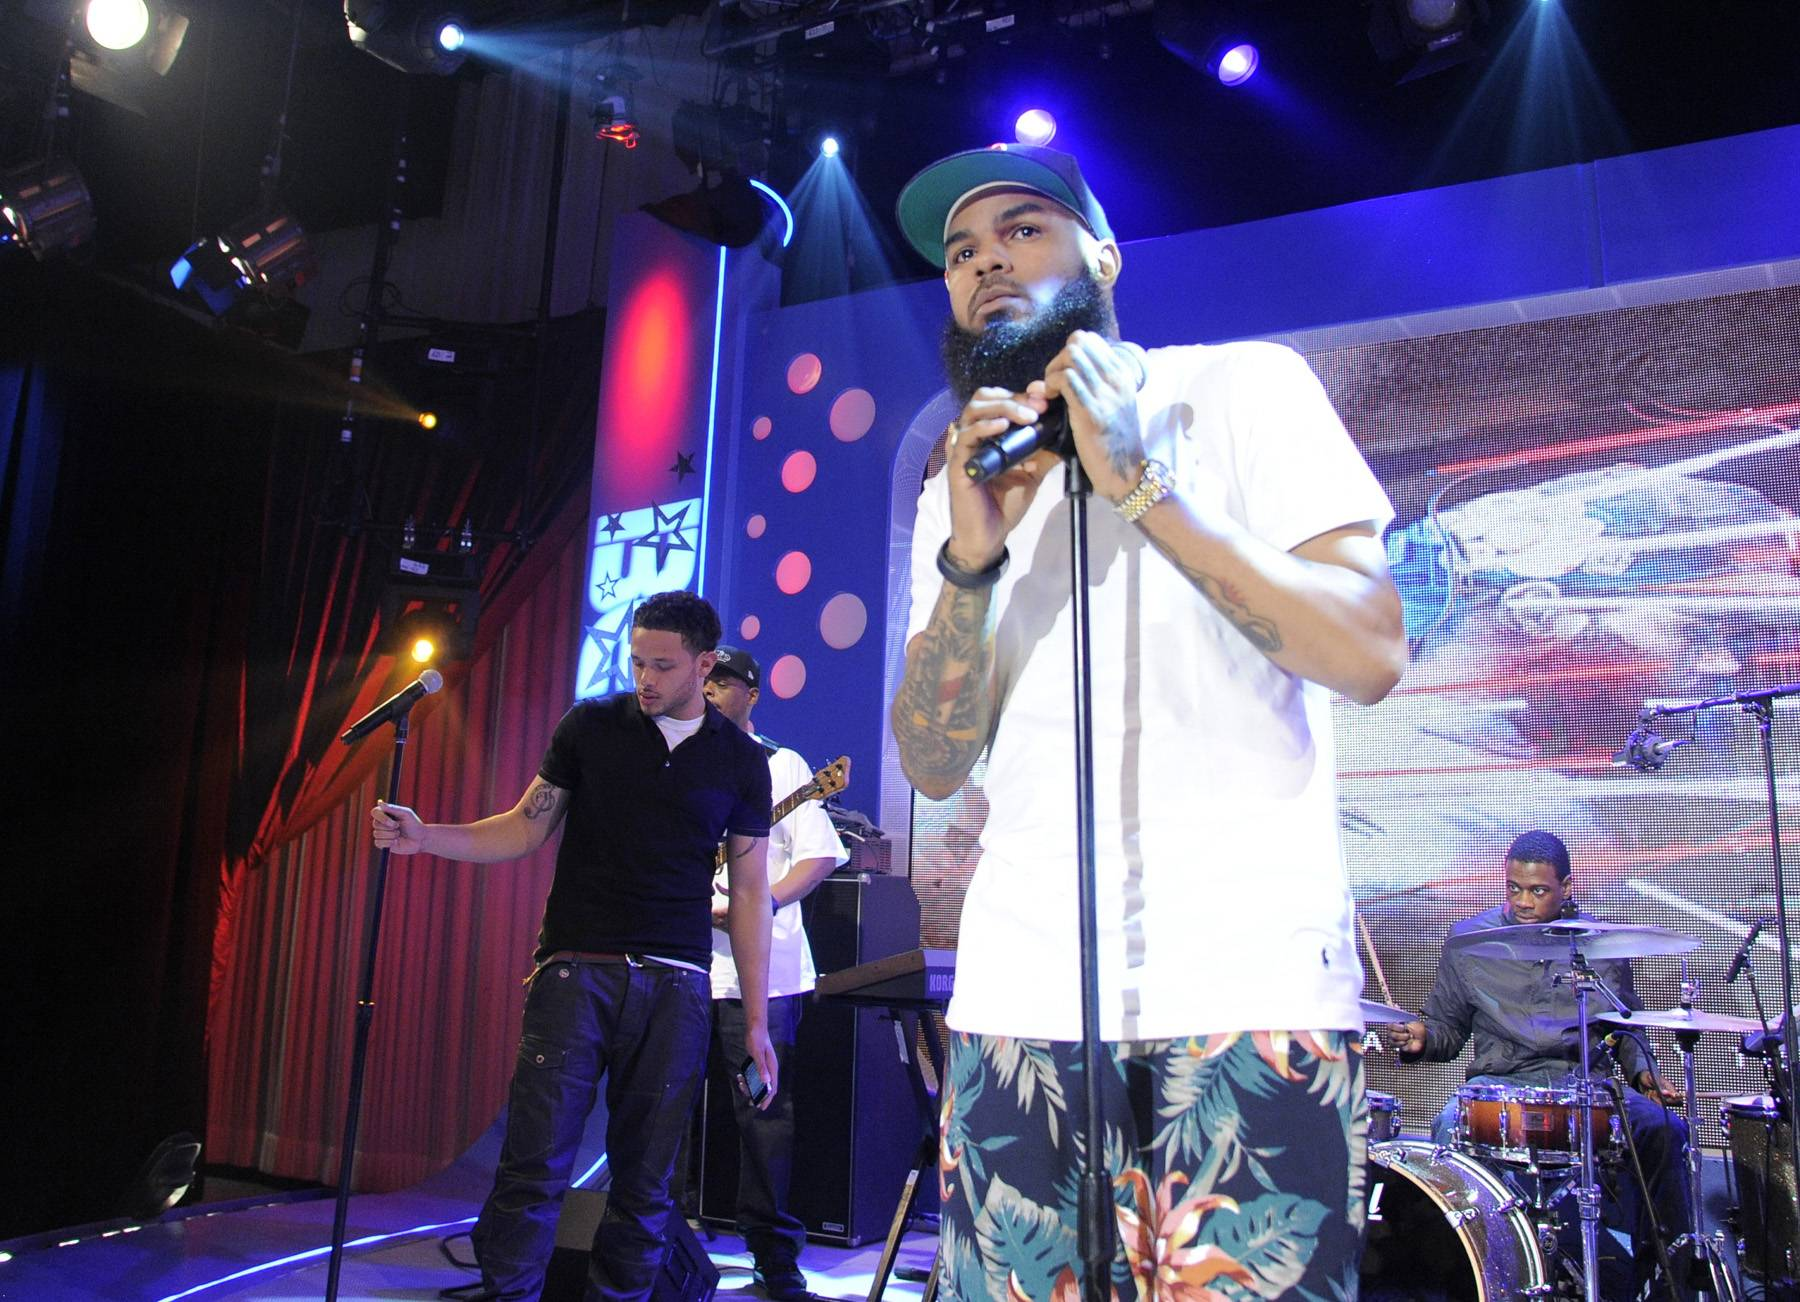 Mic Check - Stalley of MMG rehearsing before he goes on at 106 & Park, April 17, 2012. (Photo: John Ricard/BET)